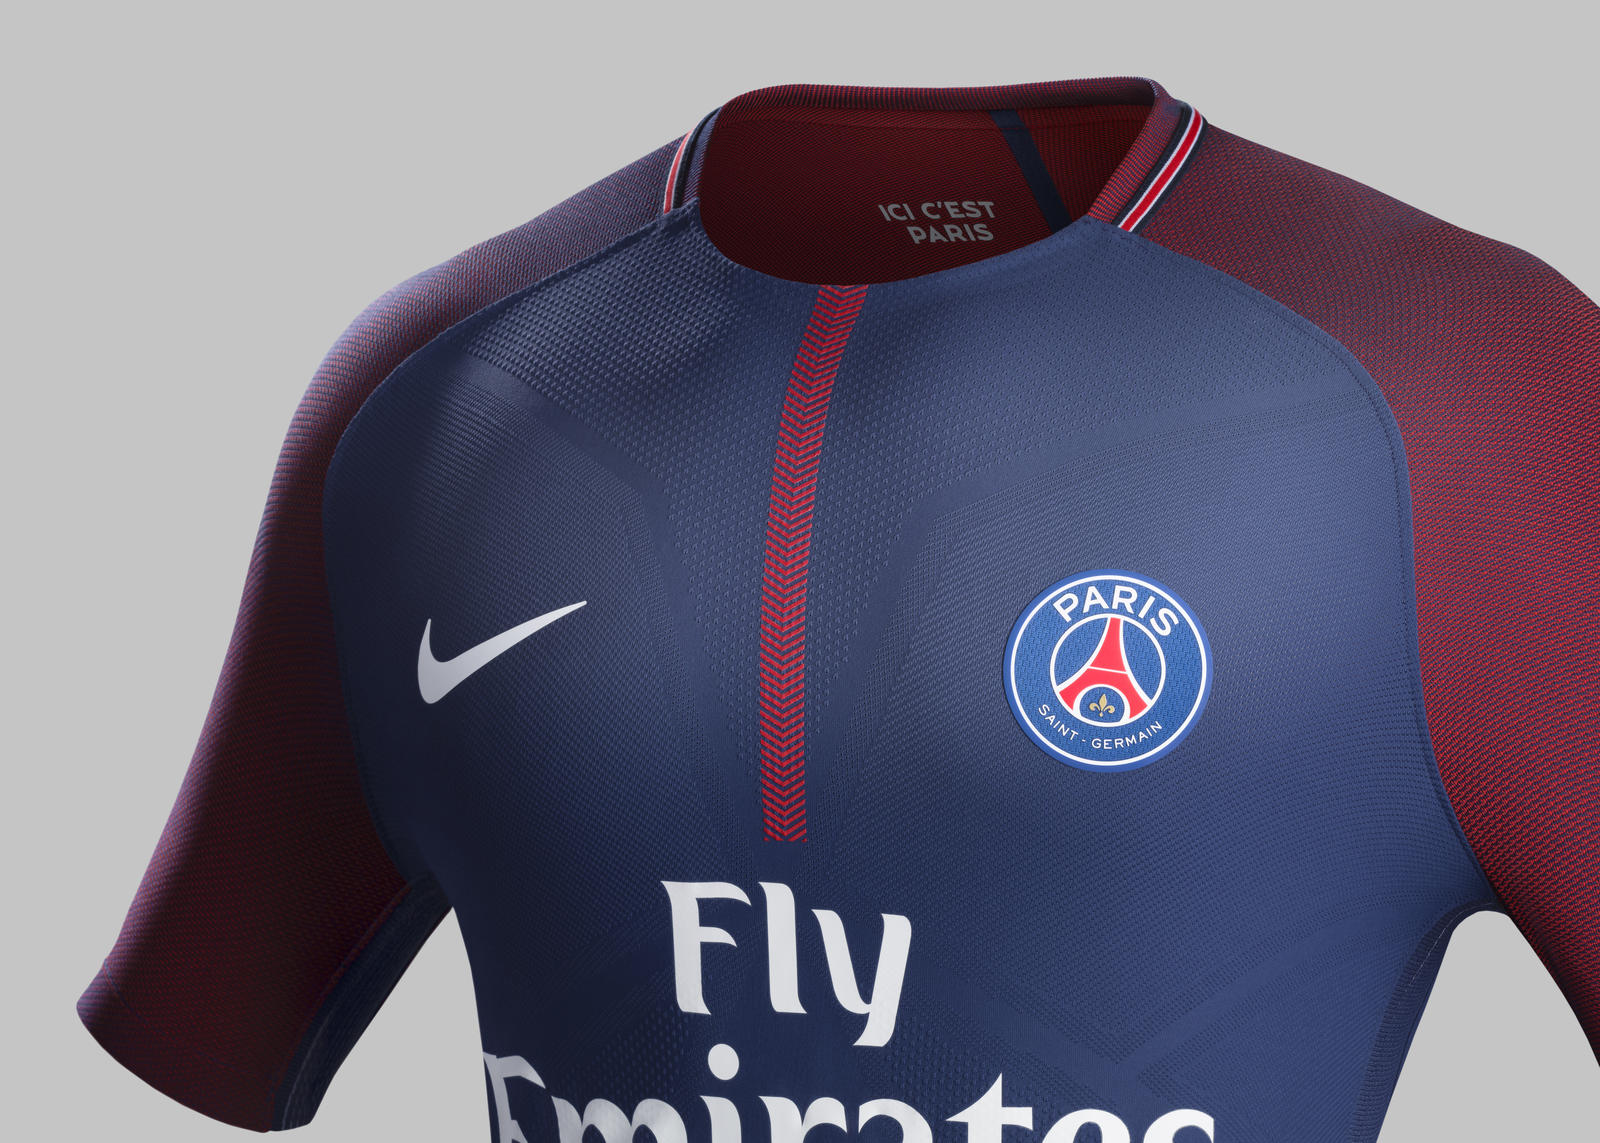 online retailer fa761 91991 Dream League Soccer Kits Psg 2019 Jordan